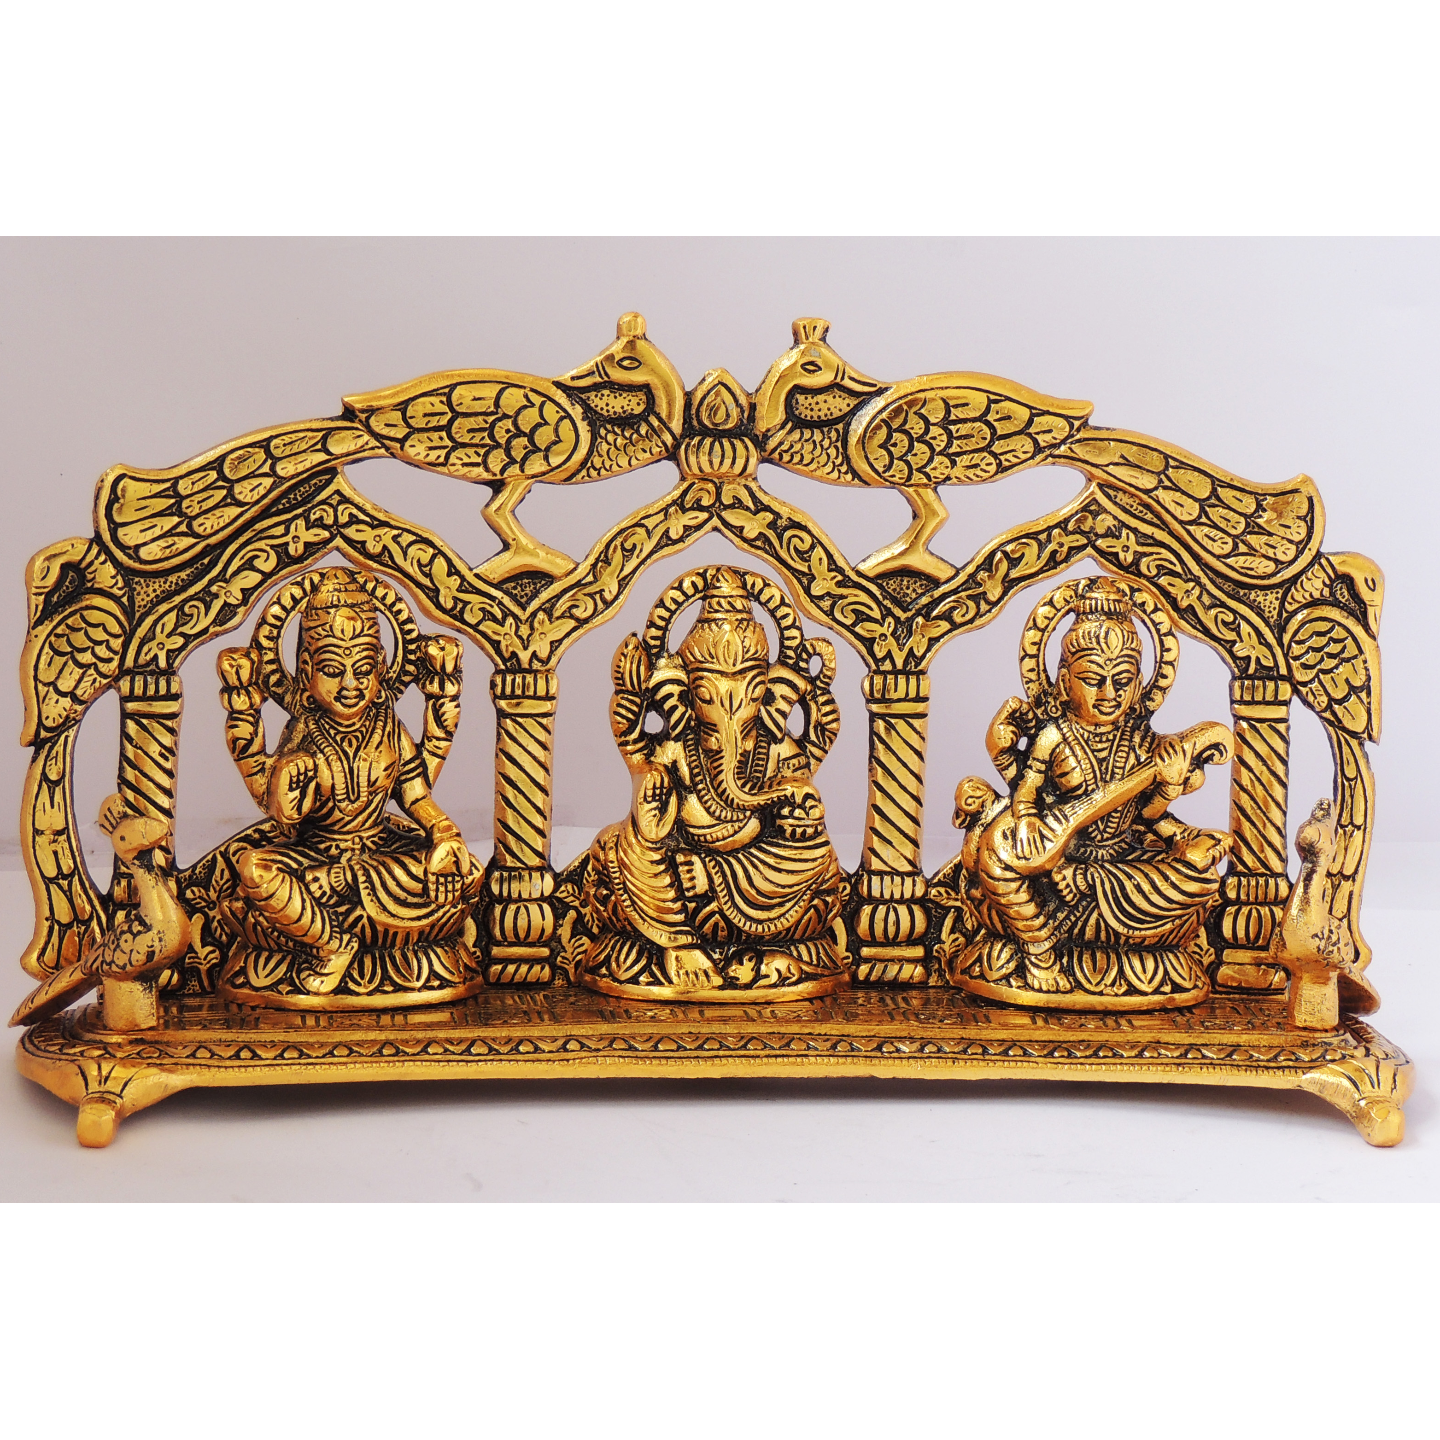 Laxmi Ganesh Saraswati LGS Statue Murti Idol In Gold Antique Finish 11x2.5x6 Inch (AS297 G)